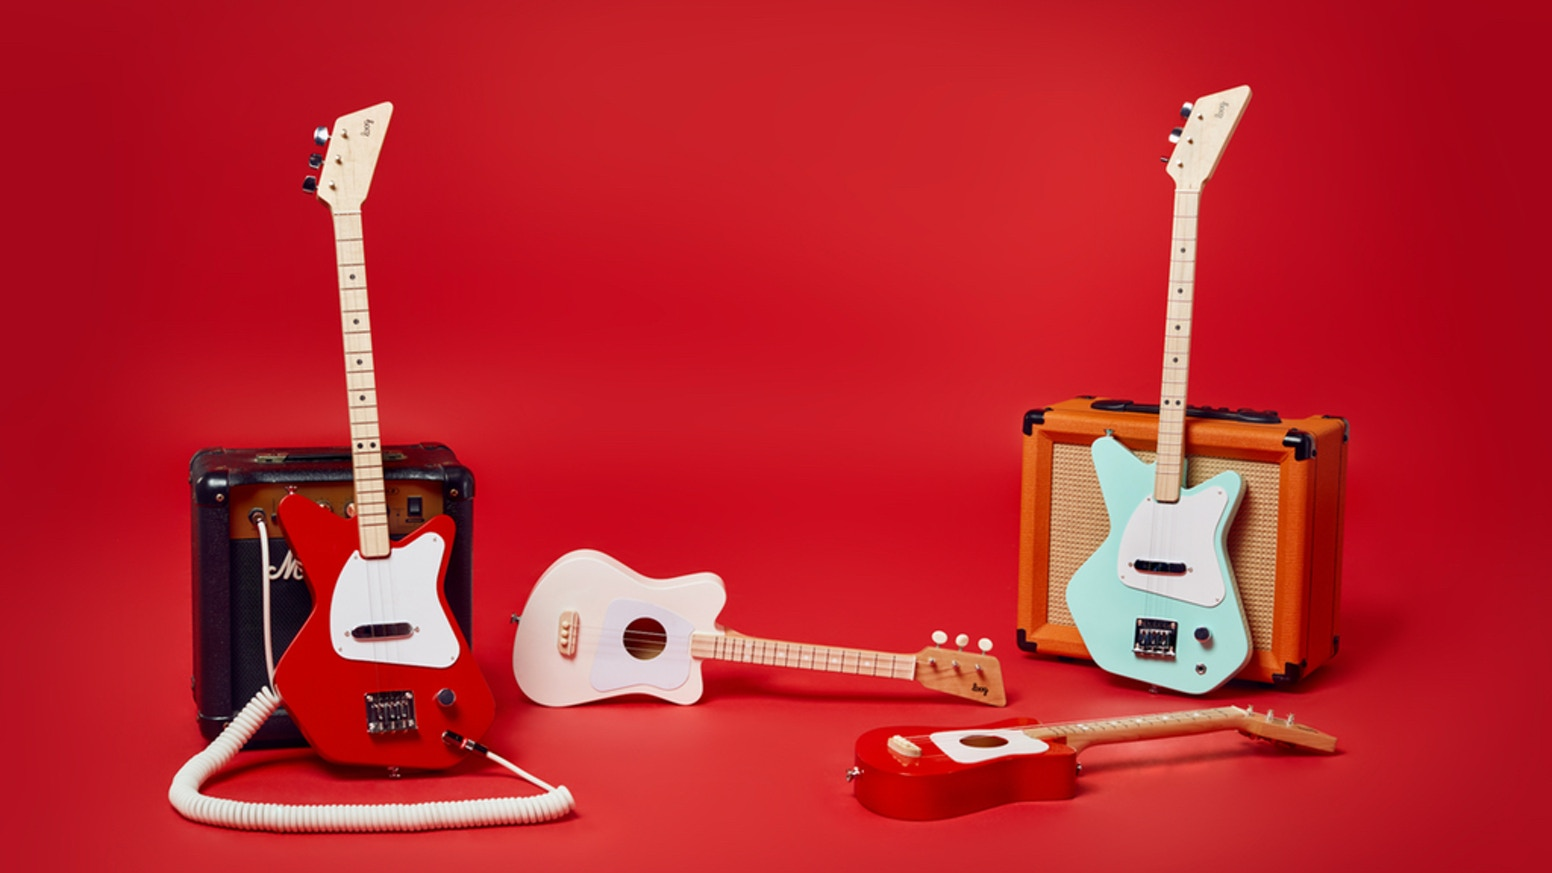 Guitars designed to make it fun and easy to play music. Now with an app that gets you playing songs on day one.  Learn more at loogguitars.com